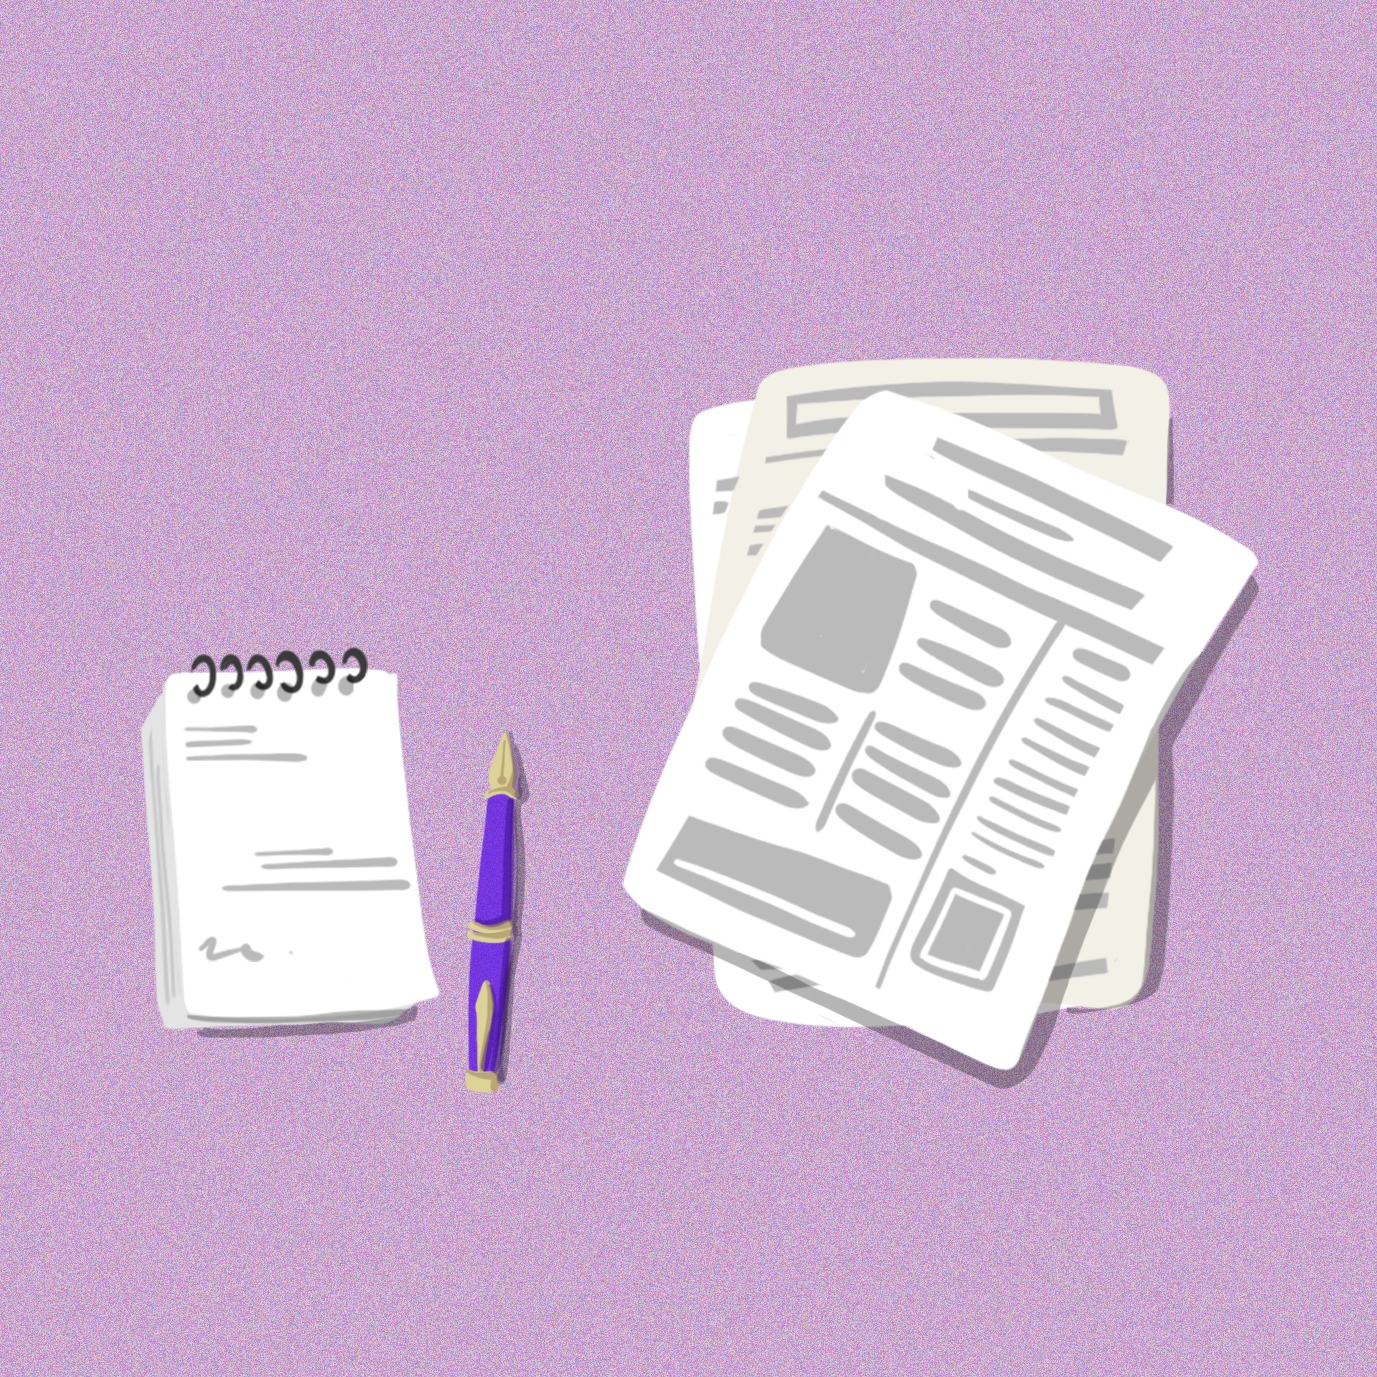 Illustration of a notepad, pen and newspapers, on a purple background. Illustration by Gaia Leandri.